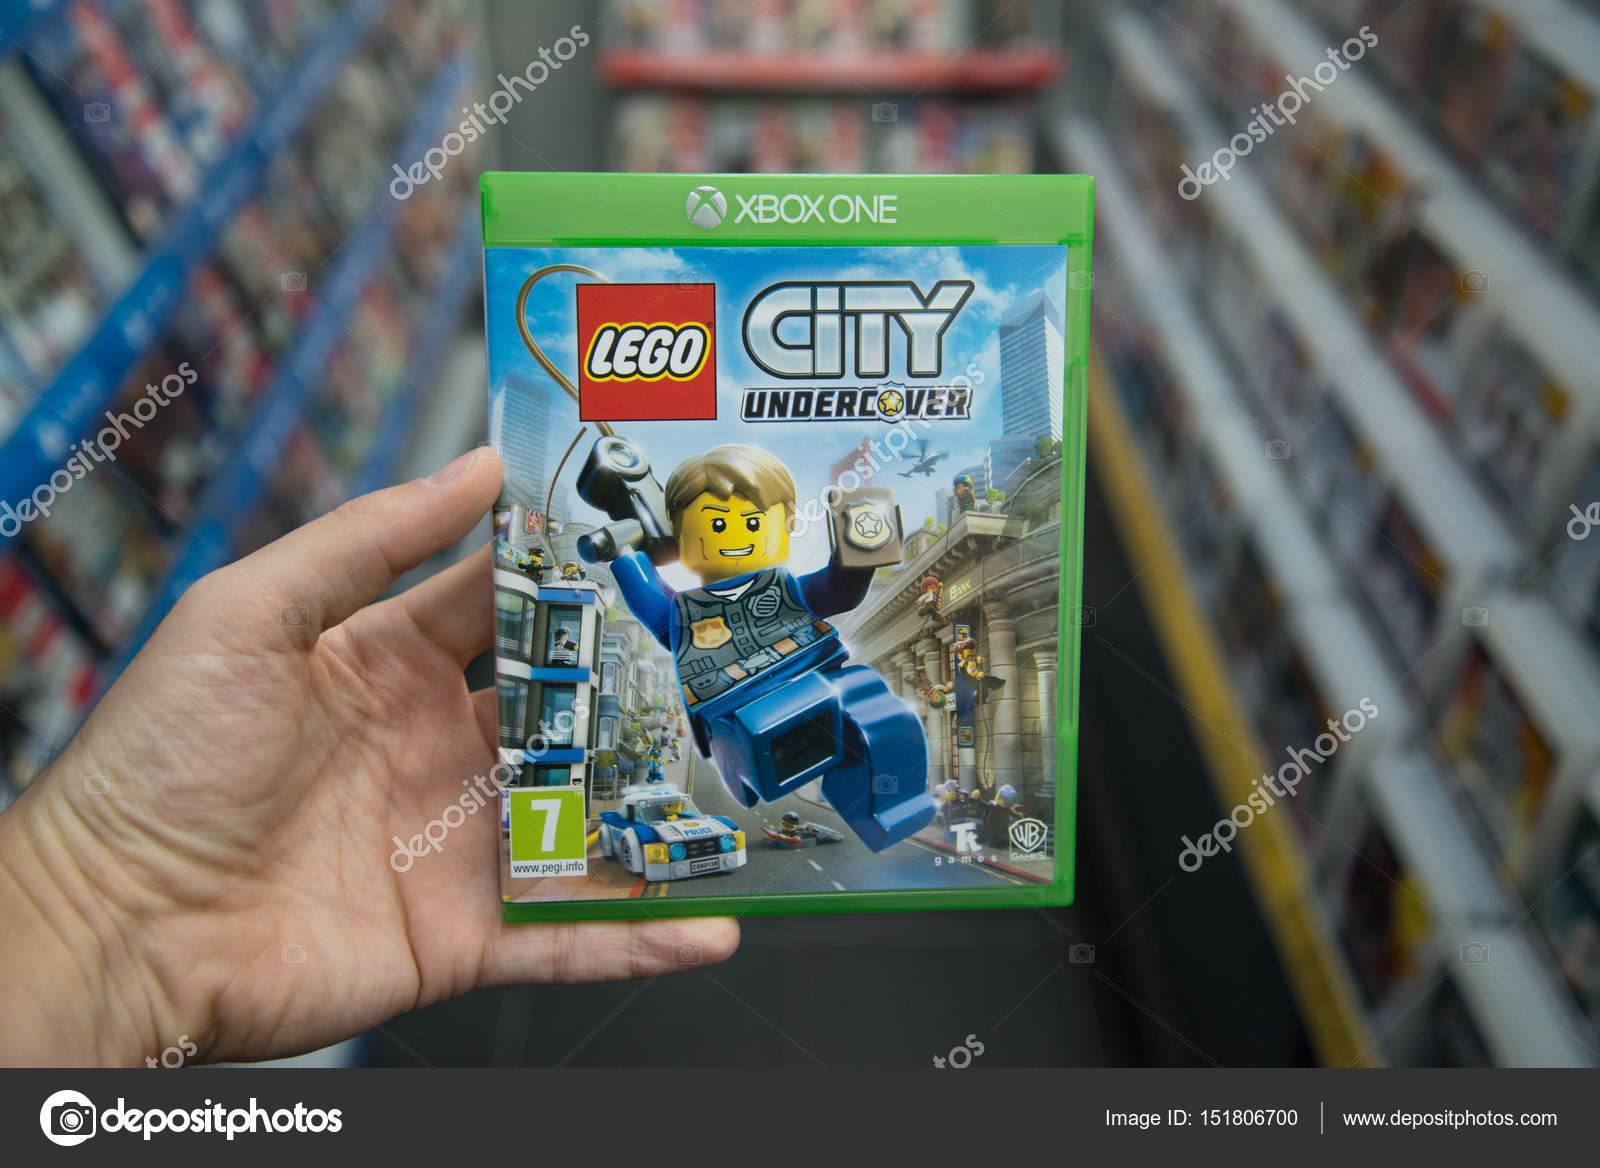 Lego City Undercover Videogame On Microsoft Xbox One Stock